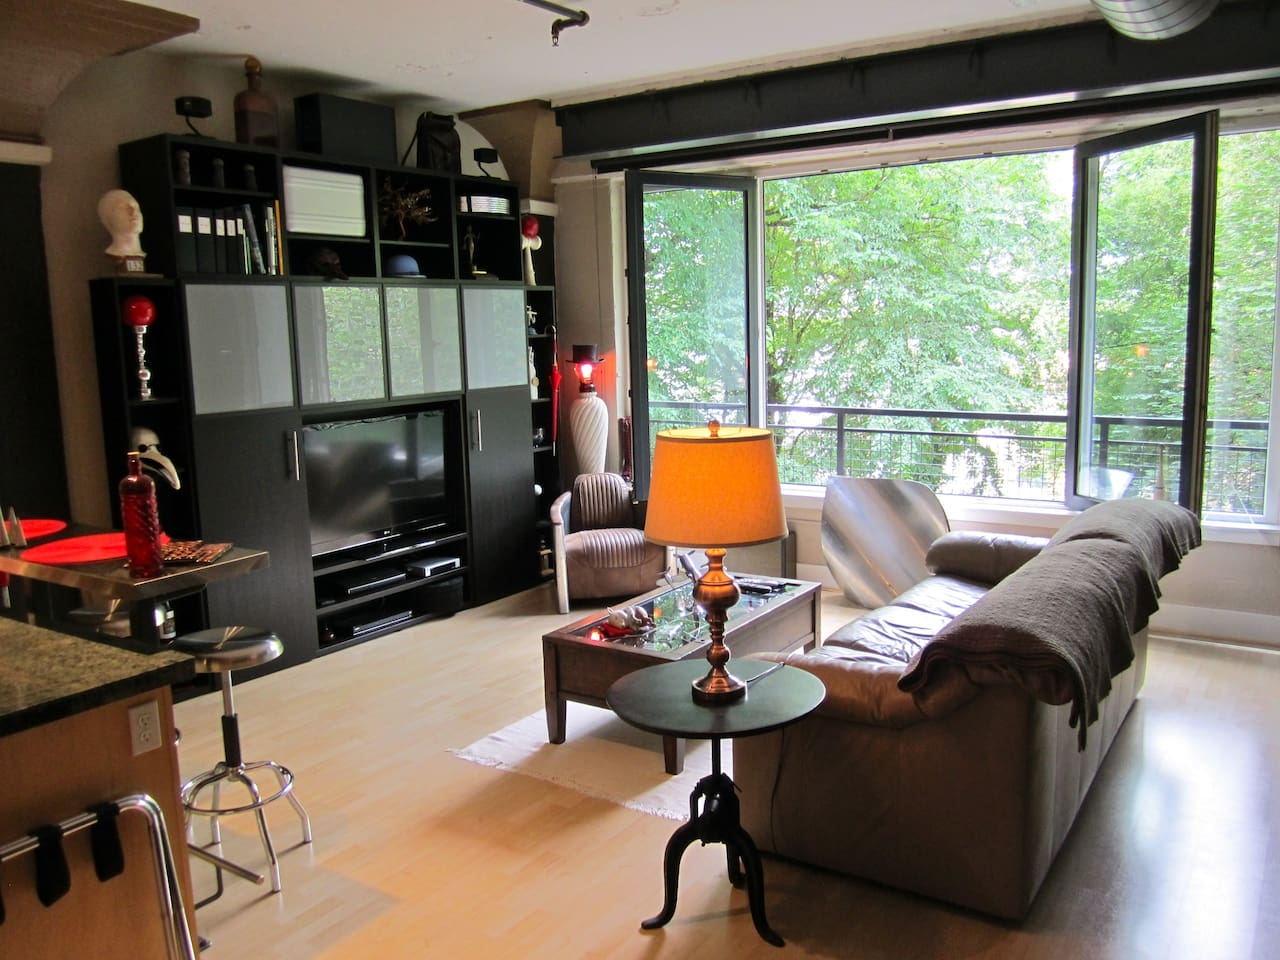 Here's the main living space!  I keep the French Style doors open almost always.  With the park just outside it feels like you're in the middle of the woods when in actuality you're in the middle of the city!